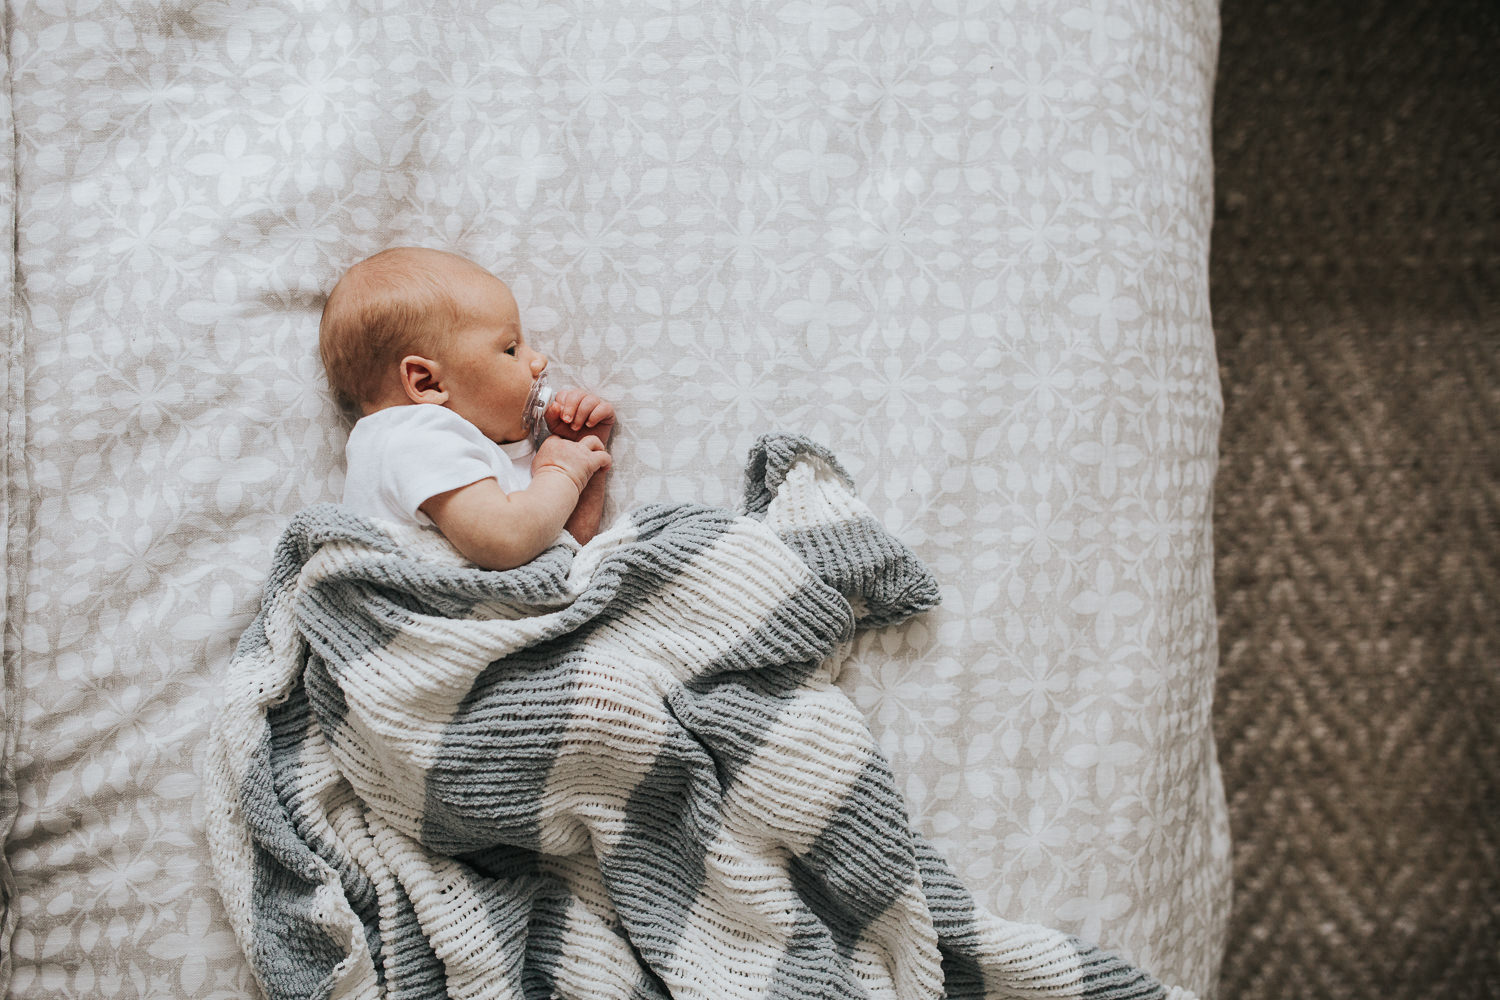 two week old baby boy lying on bed under hand knitted blanket - Stouffville In-Home Photography